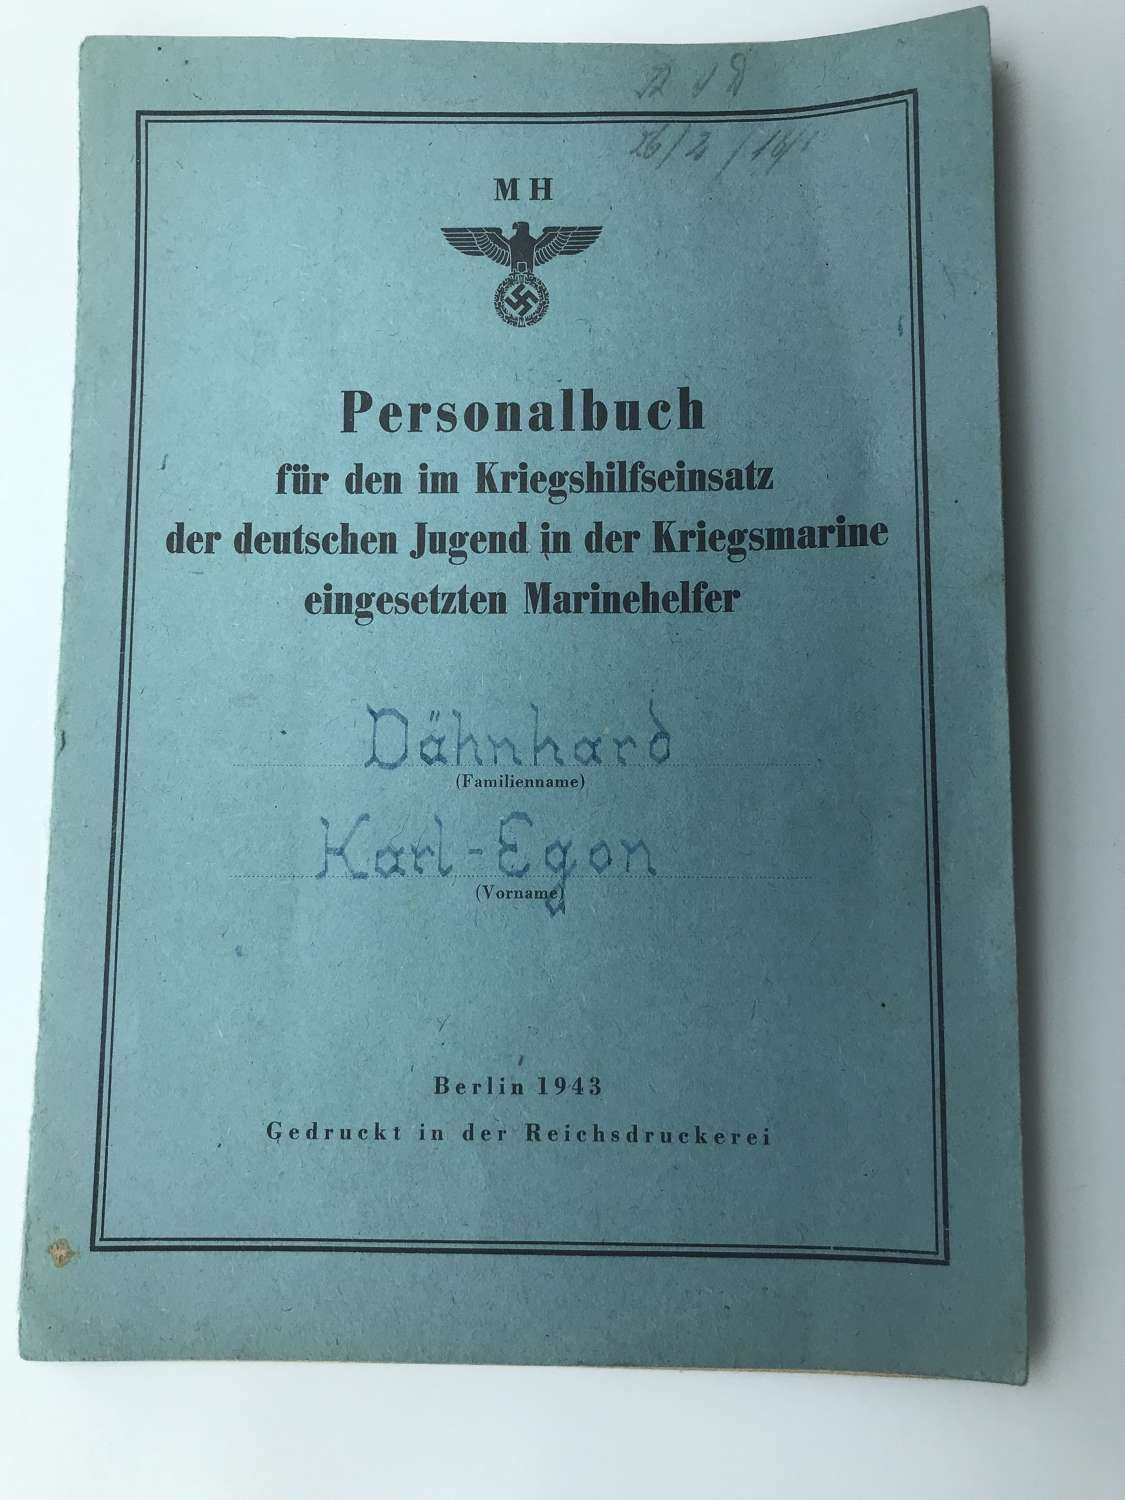 Personal book for HJ service in The Navy cadets